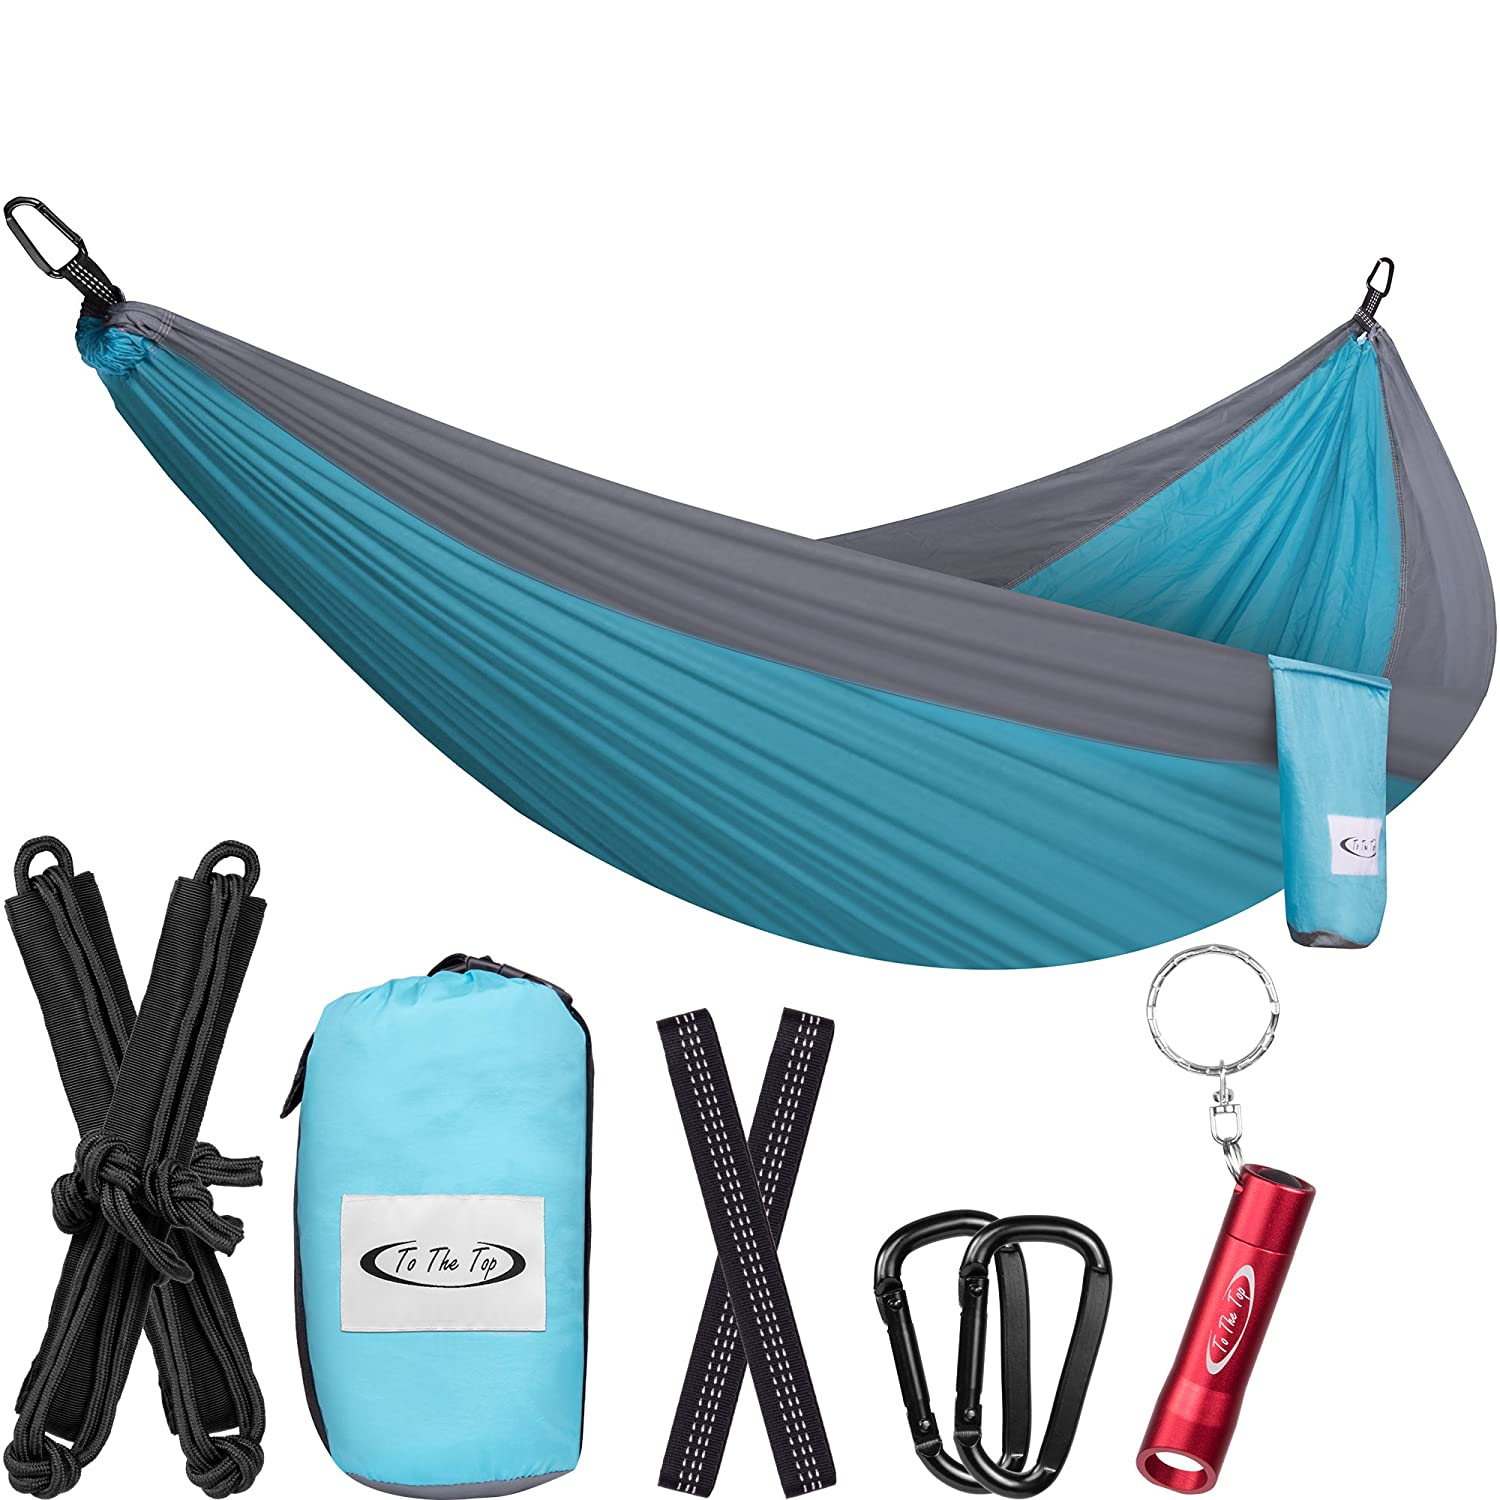 ToTheTop Camping Hammock Outdoor, Hiking, Backpacking, Yard Beach, Lightweight, Compact, Double Size, Portable Breathable Parachute Nylon Hammocks Gear